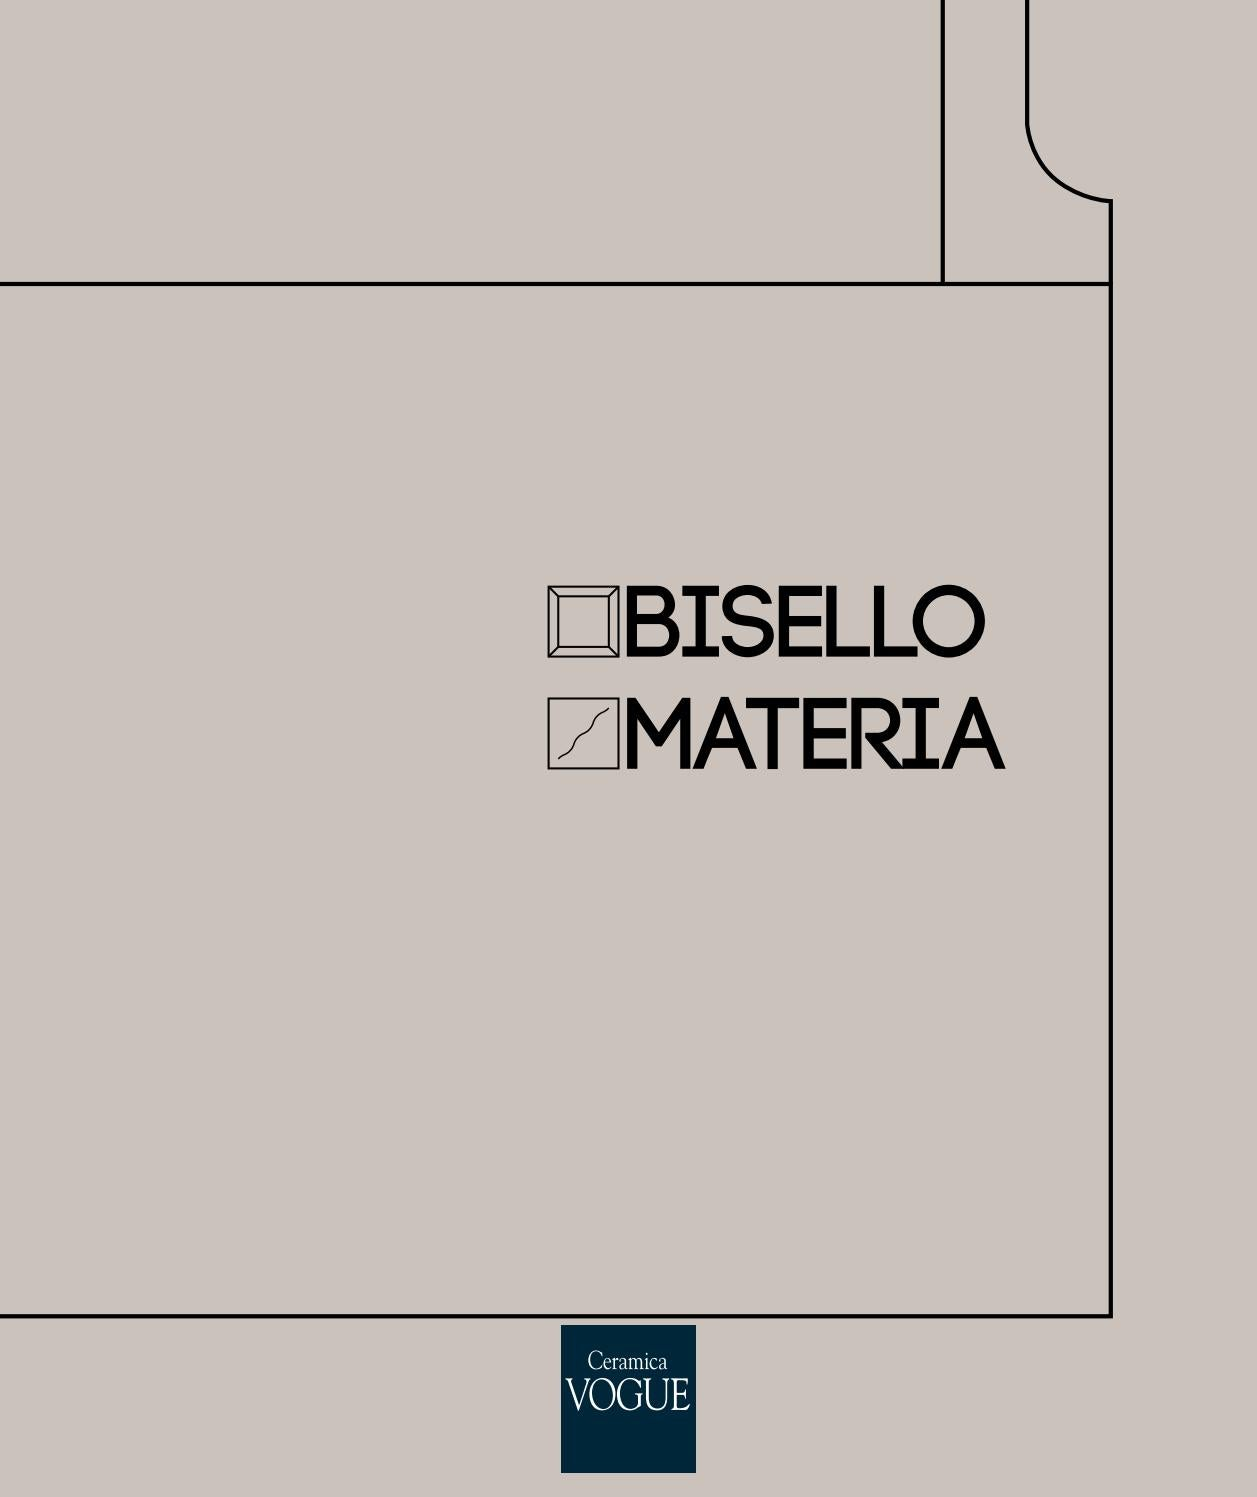 Color Tortora Ral 7044 ceramica vogue - bisello materia by altaeco group. - issuu